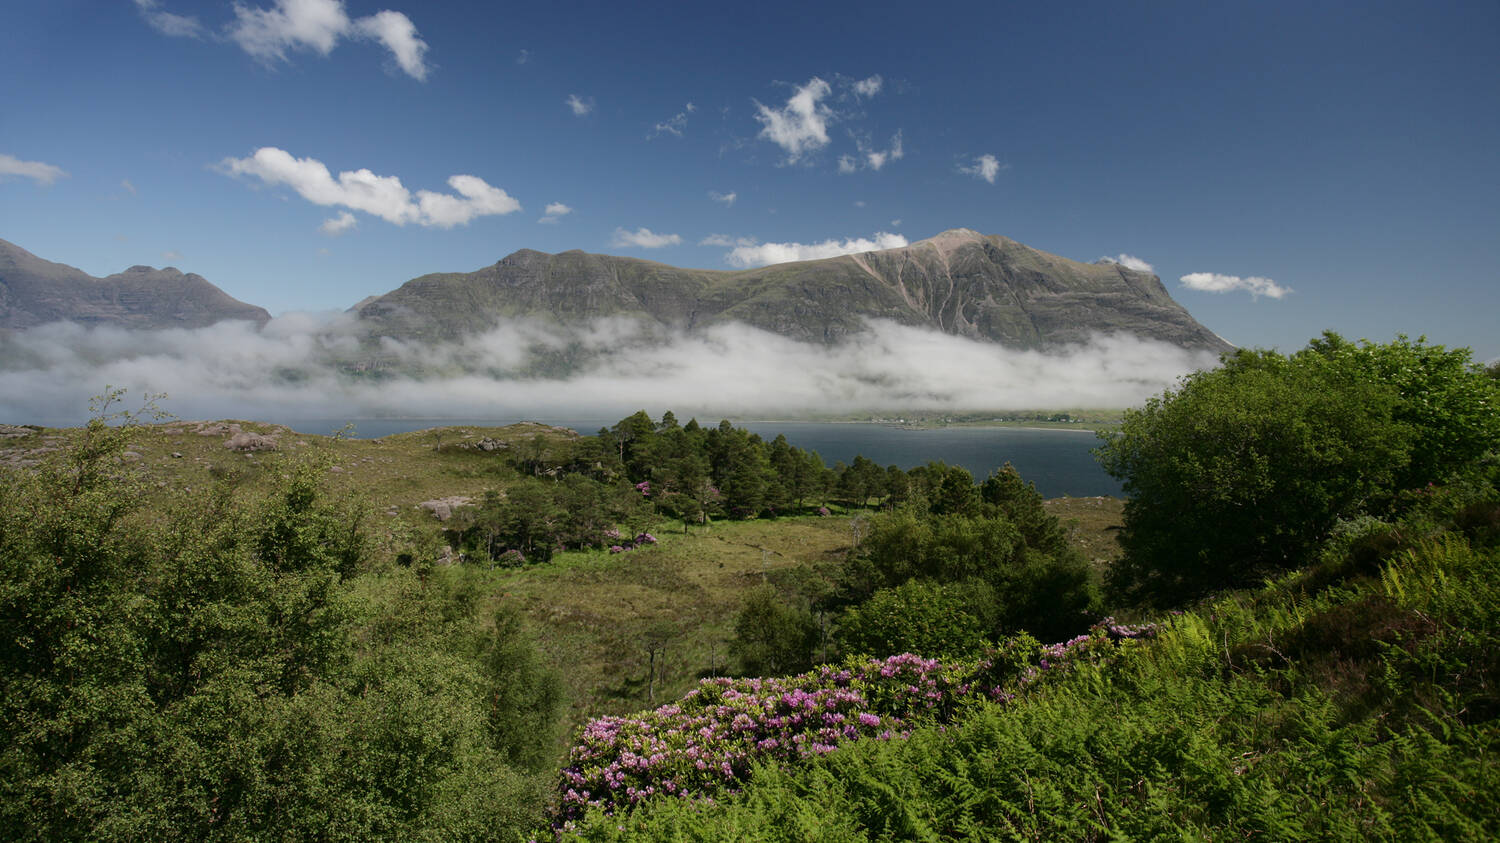 Looking across to the mountains of Torridon on a sunny, summer day. Cloud swirls around the mountain base, just above the loch.